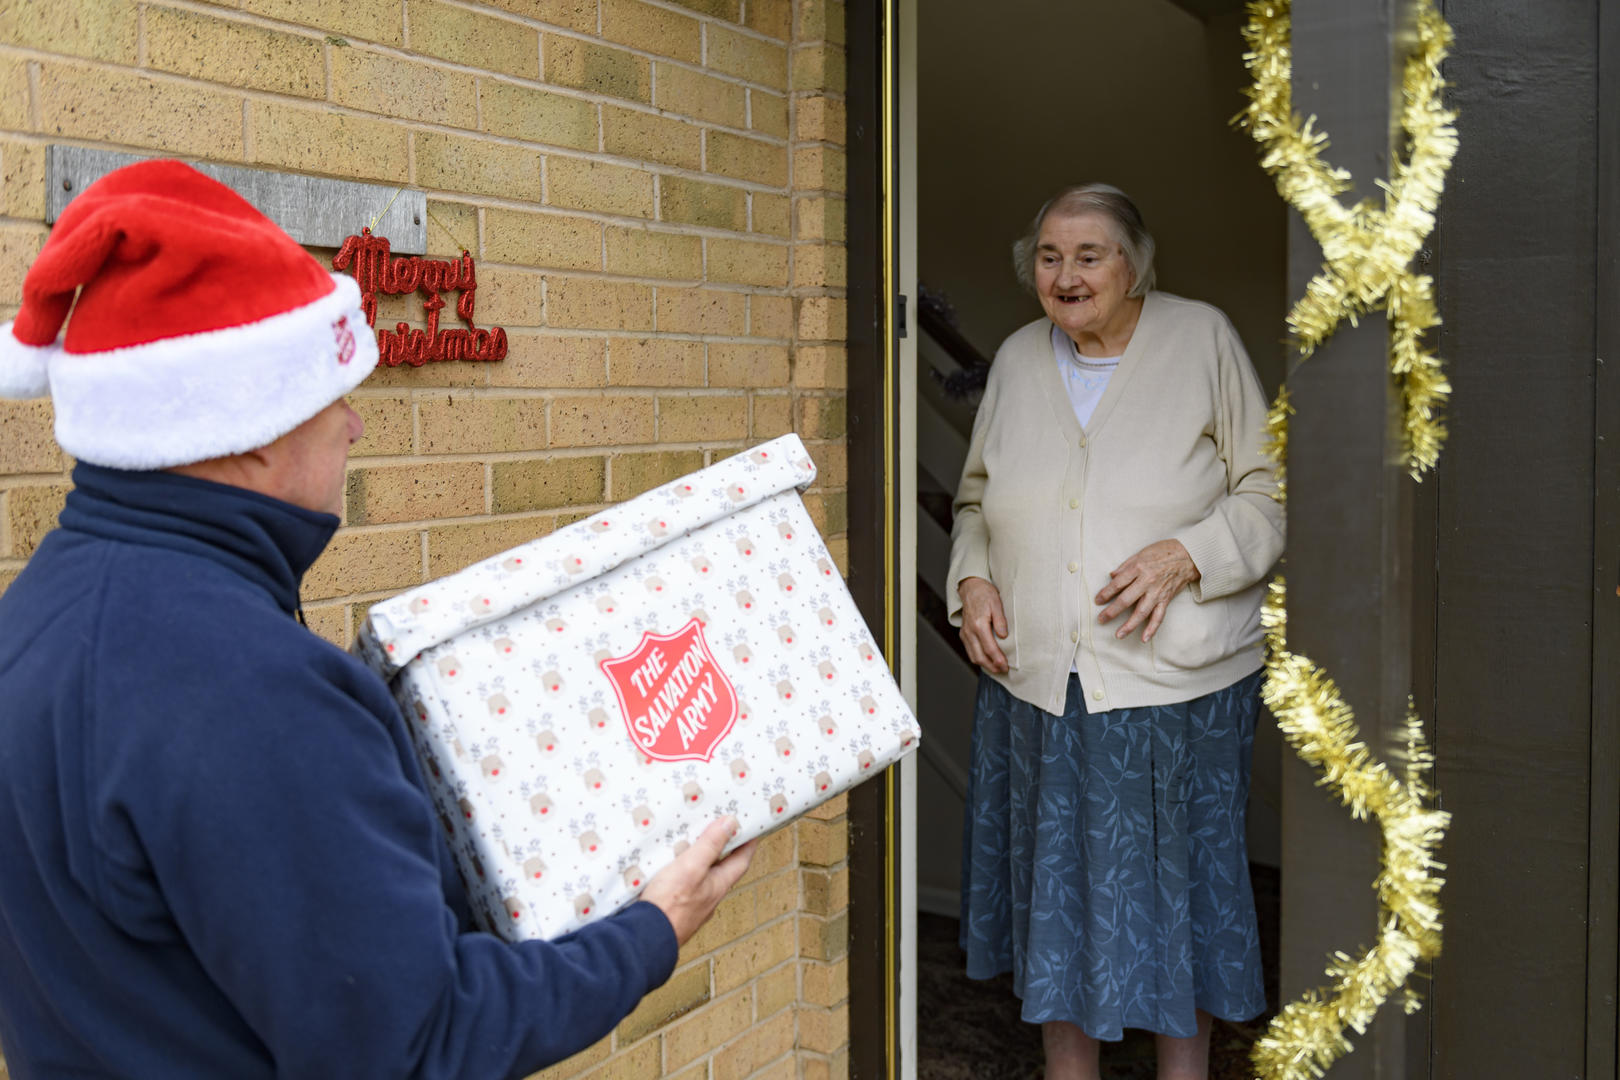 Salvation Army officer delivering meals on wheels at Christmas